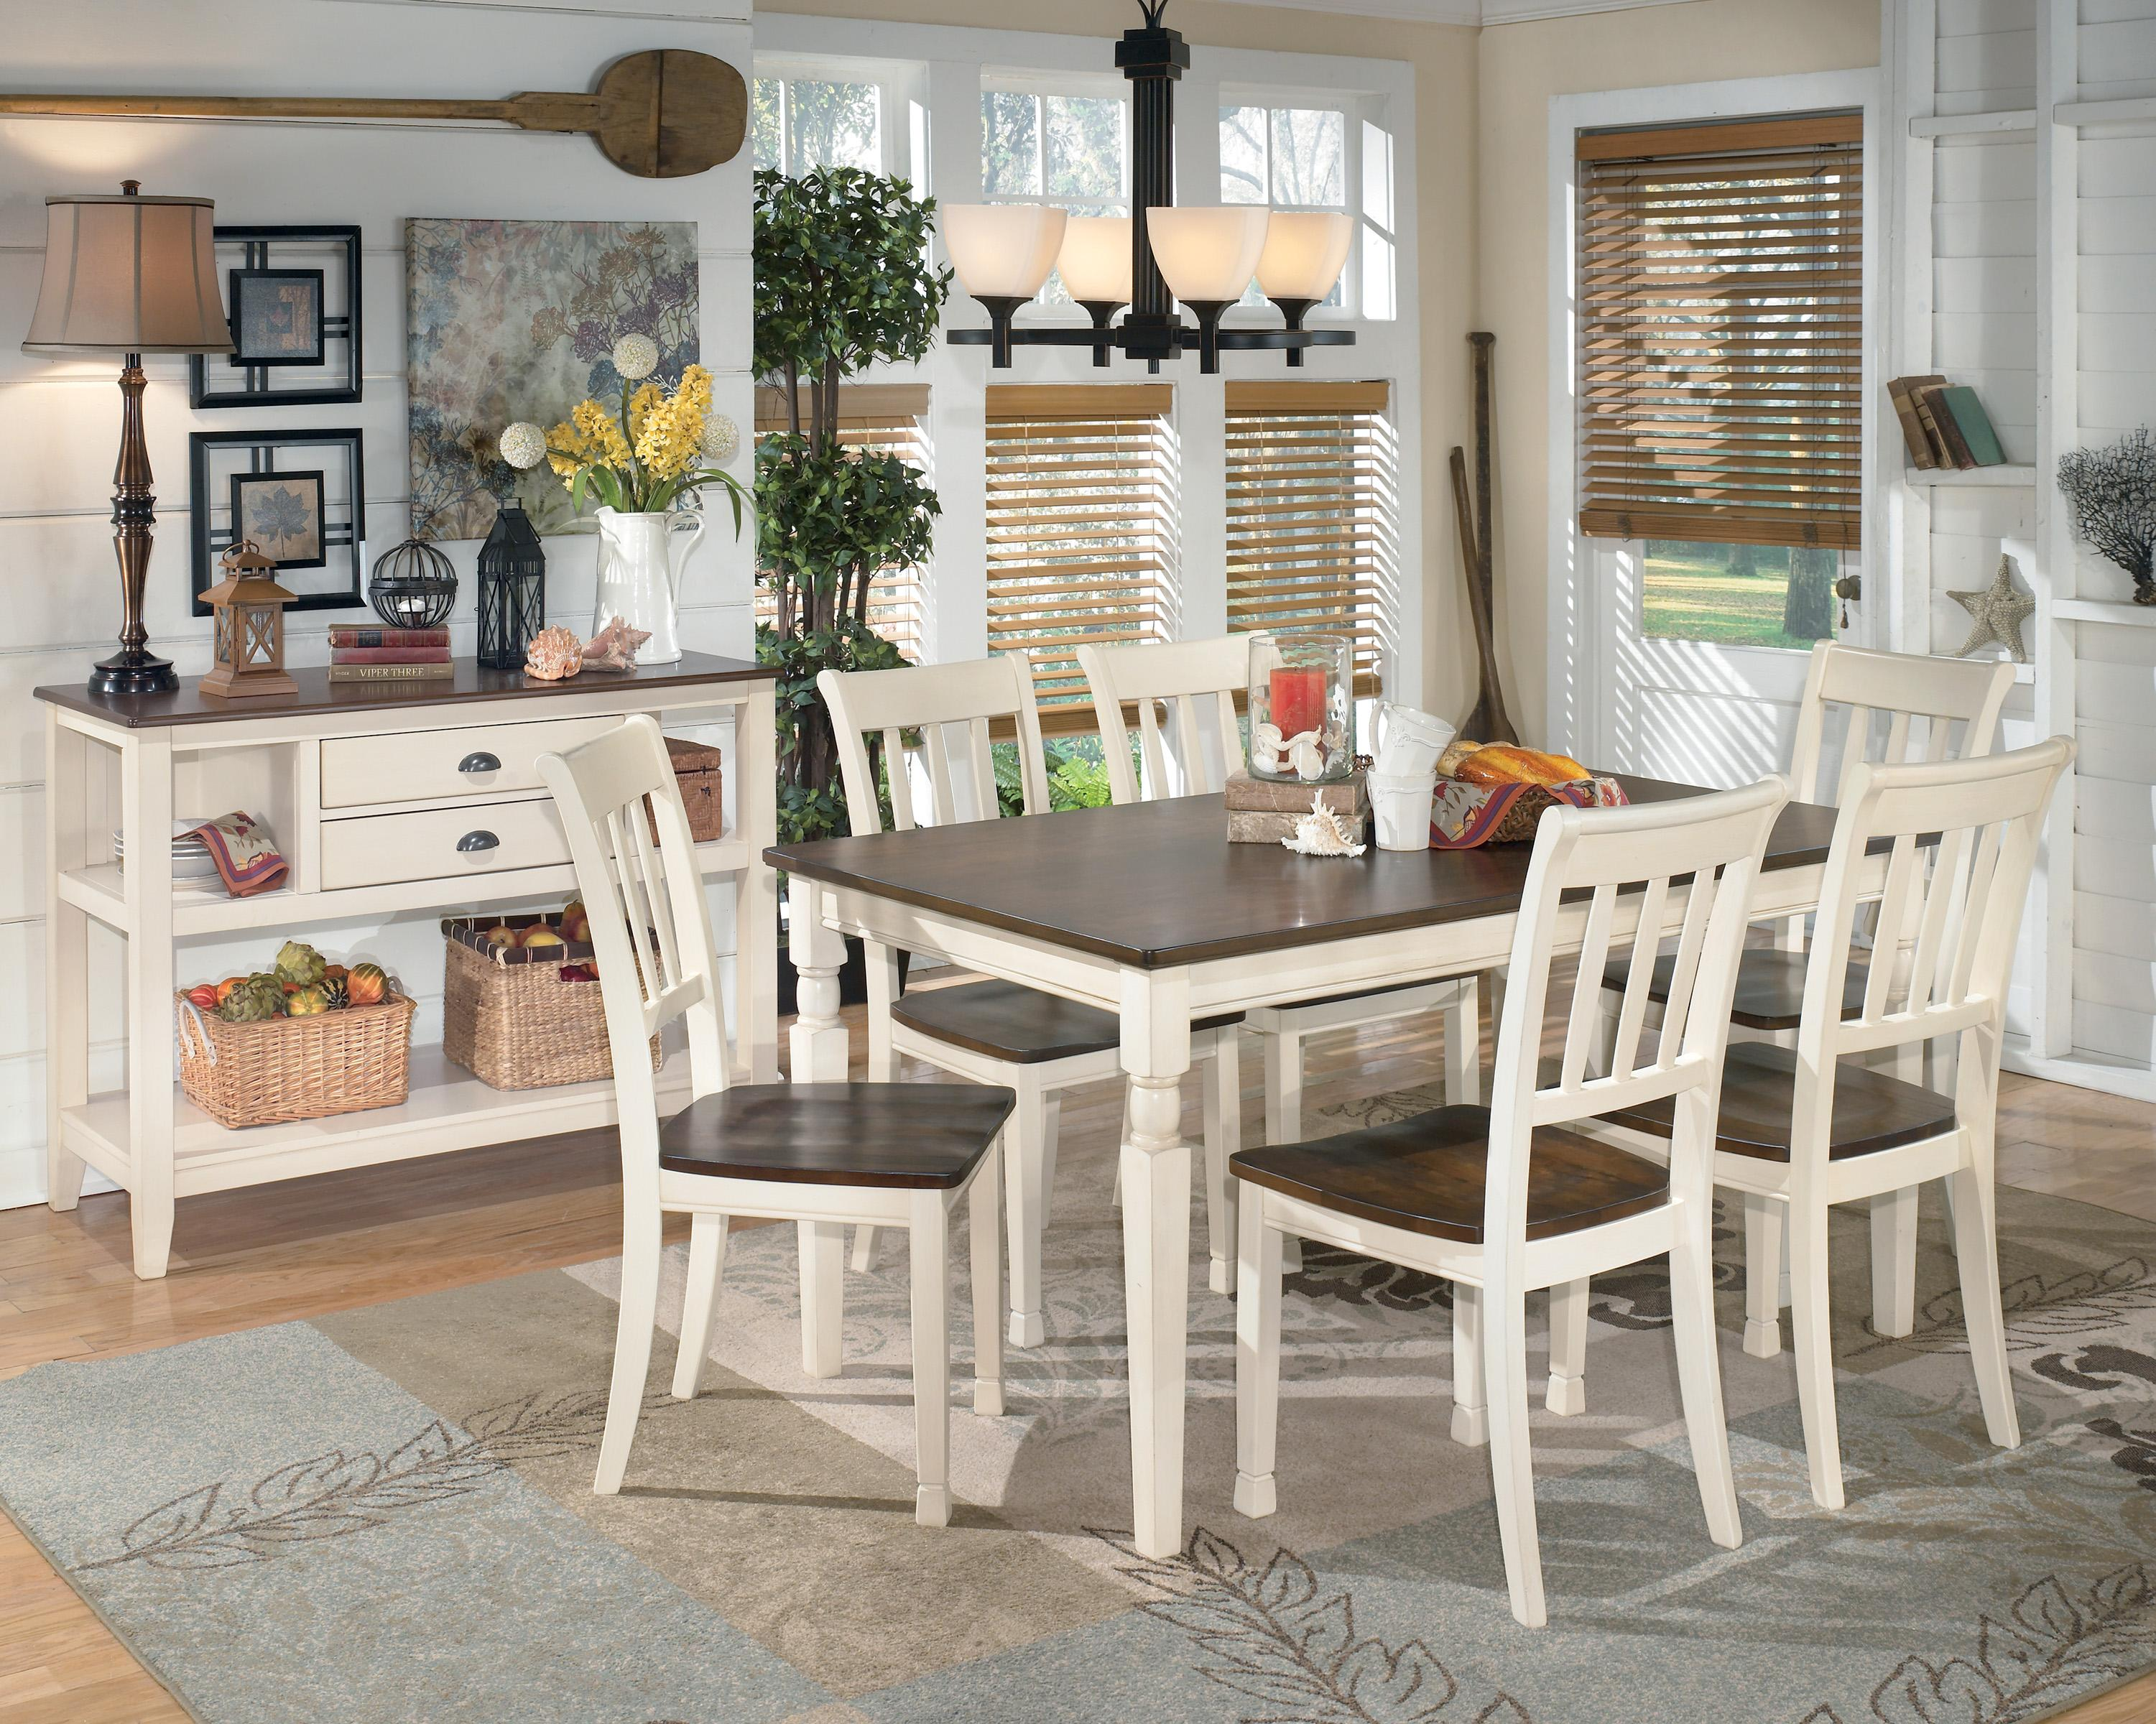 Ashley S Nest Decorating A Dining Room: Signature Design By Ashley Whitesburg Two-Tone Dining Room